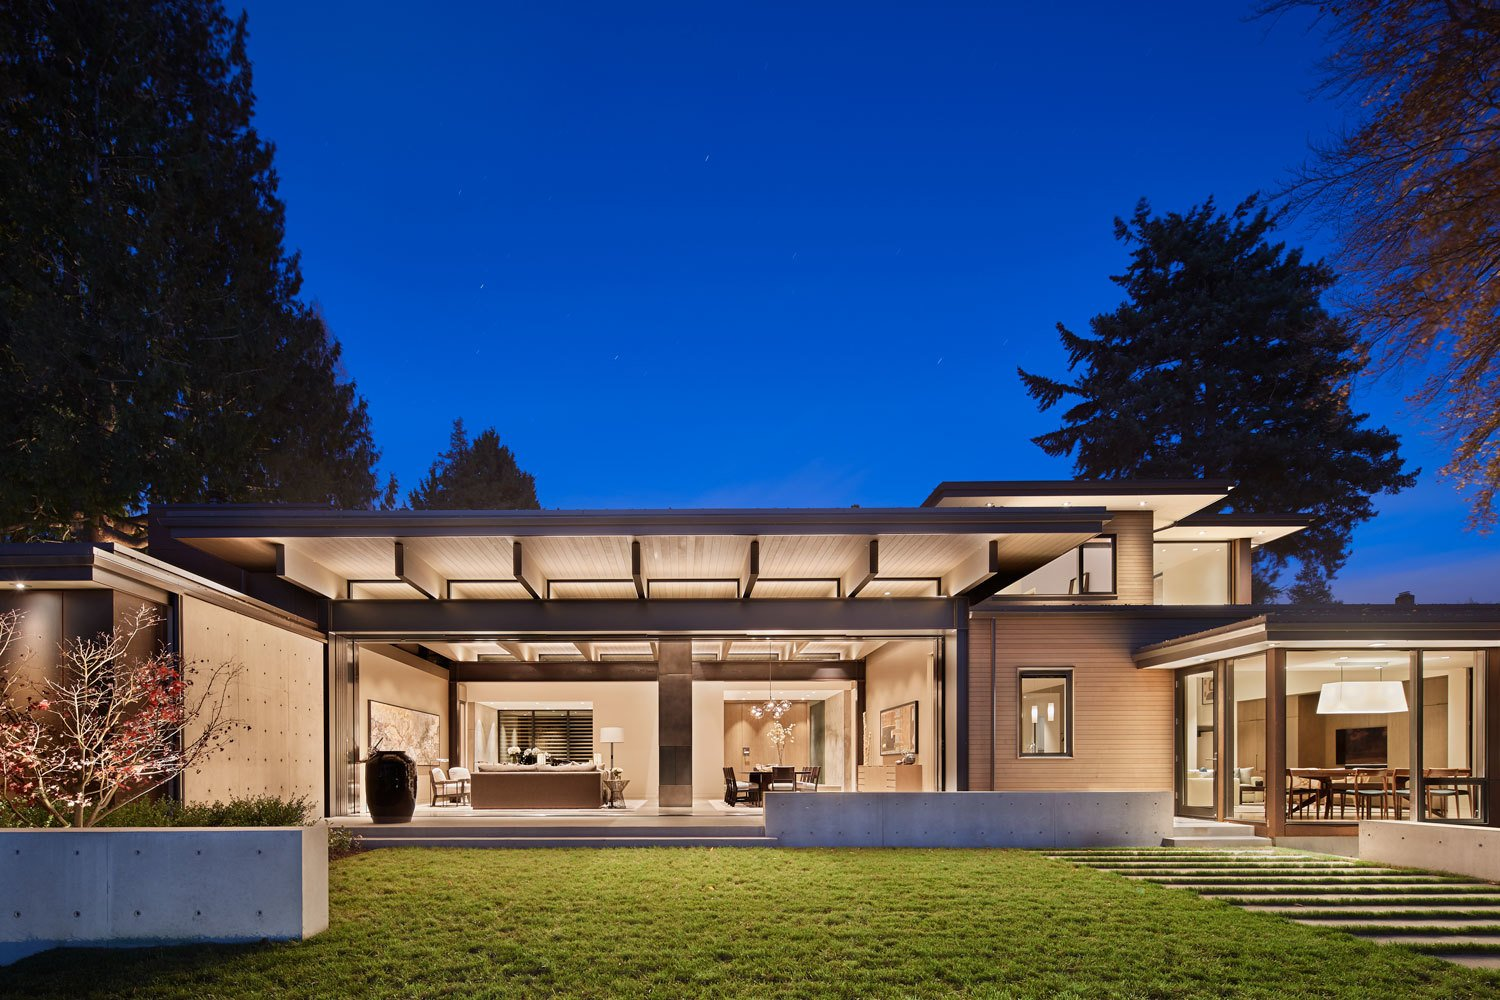 Outdoor, Large Patio, Porch, Deck, Grass, Walkways, Concrete Patio, Porch, Deck, Hardscapes, Trees, Shrubs, and Back Yard An evening view of the home from the lake  Union Bay Residence by NB Design Group